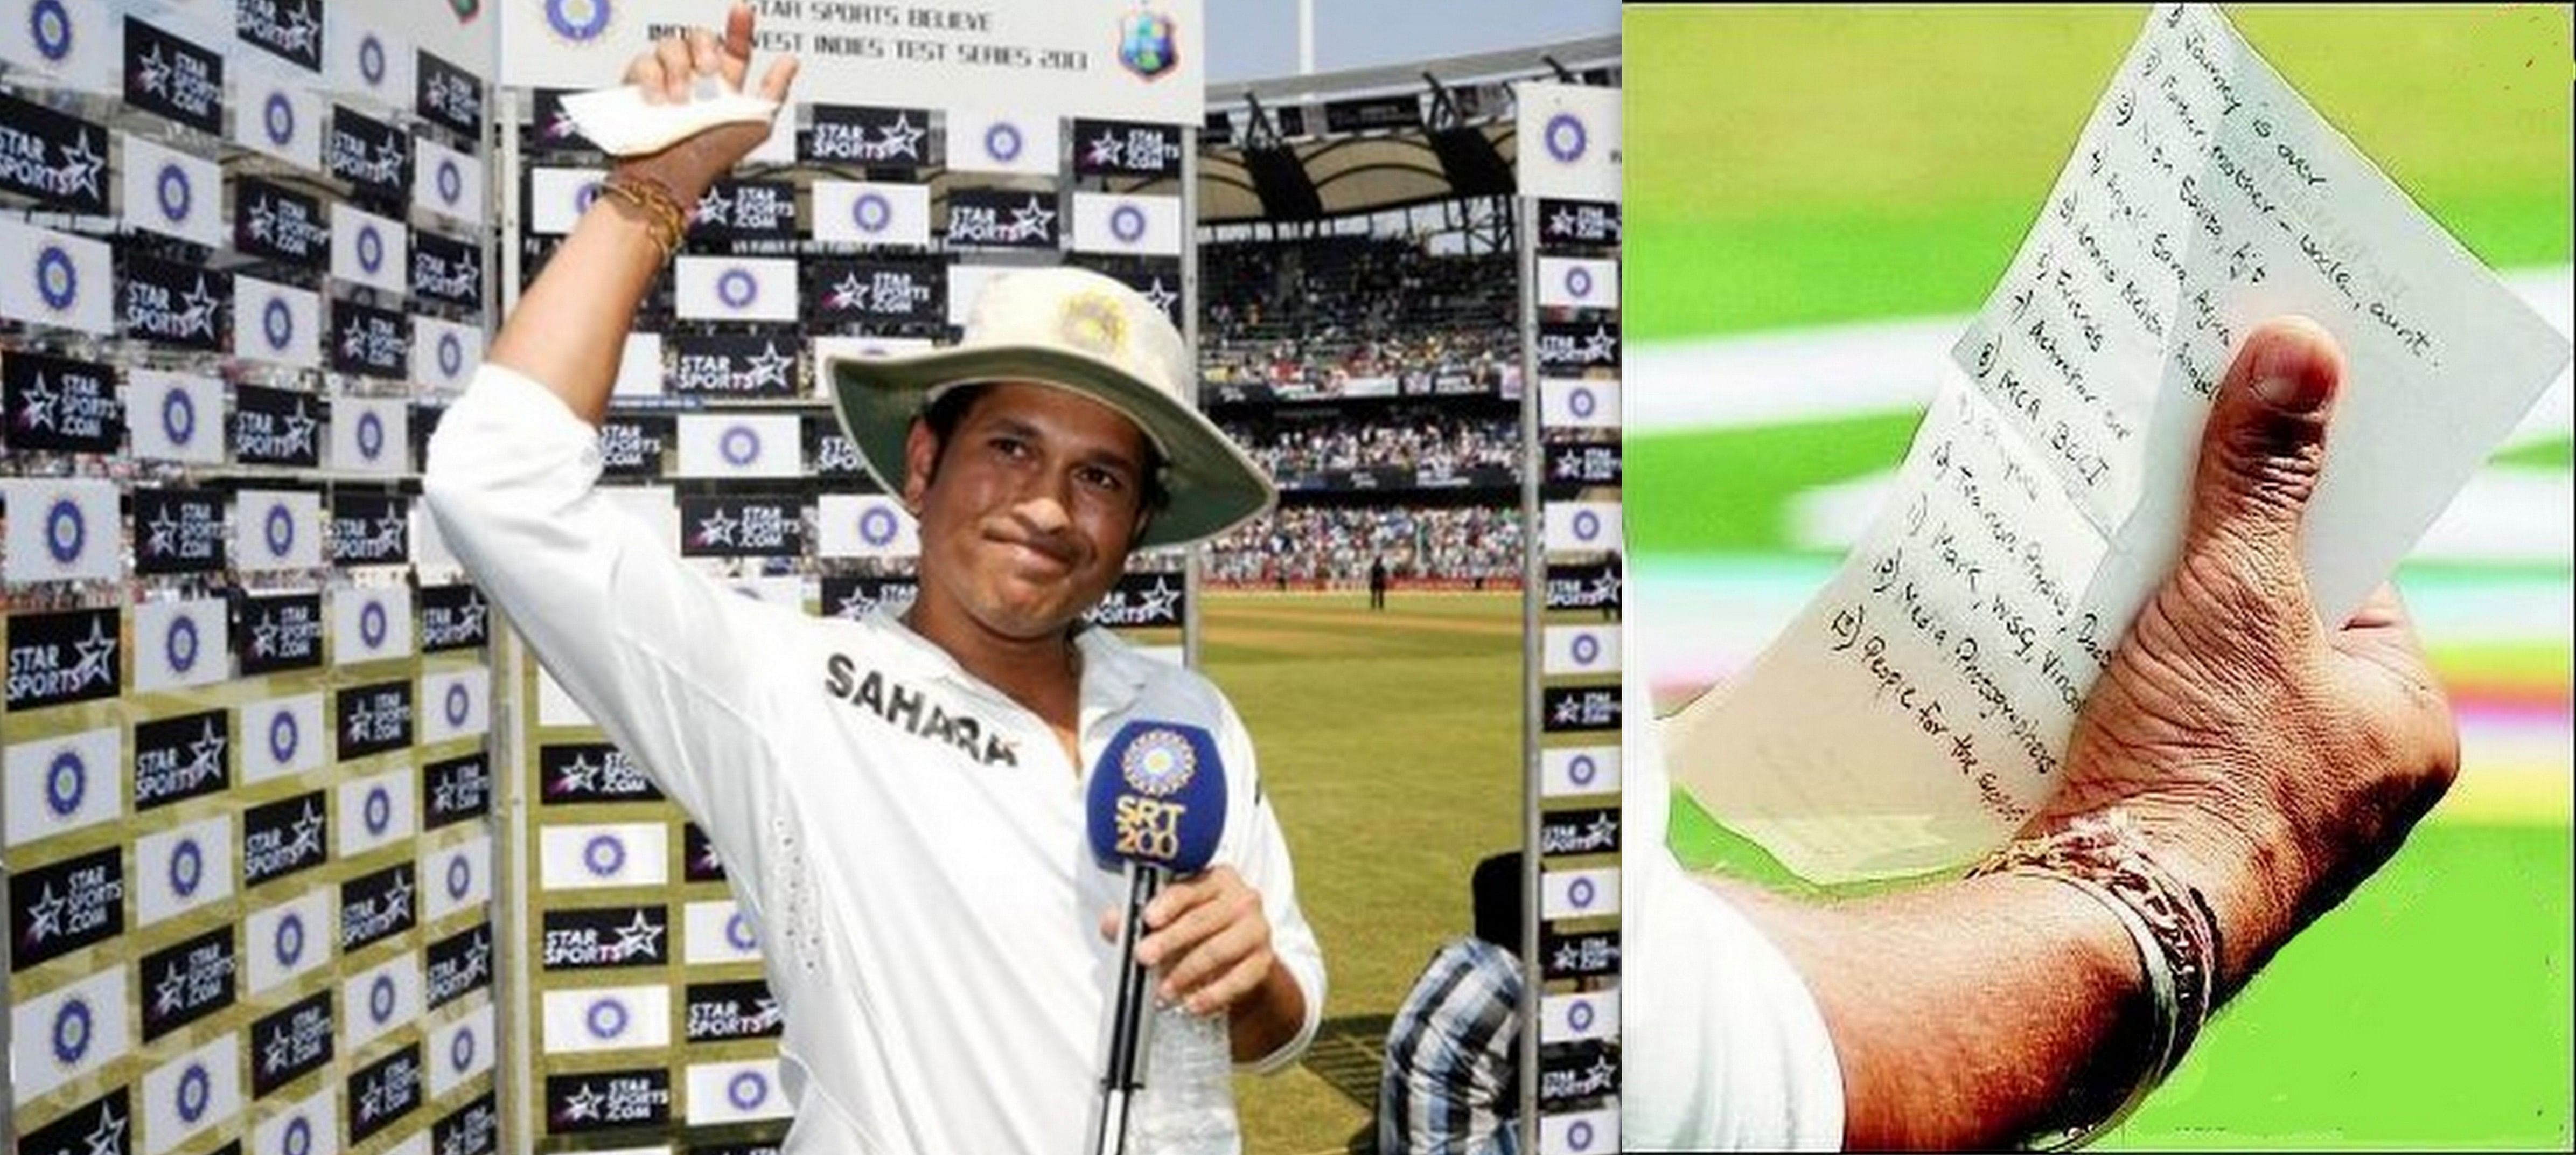 Notes from Sachin Tendulkar's farewell speech